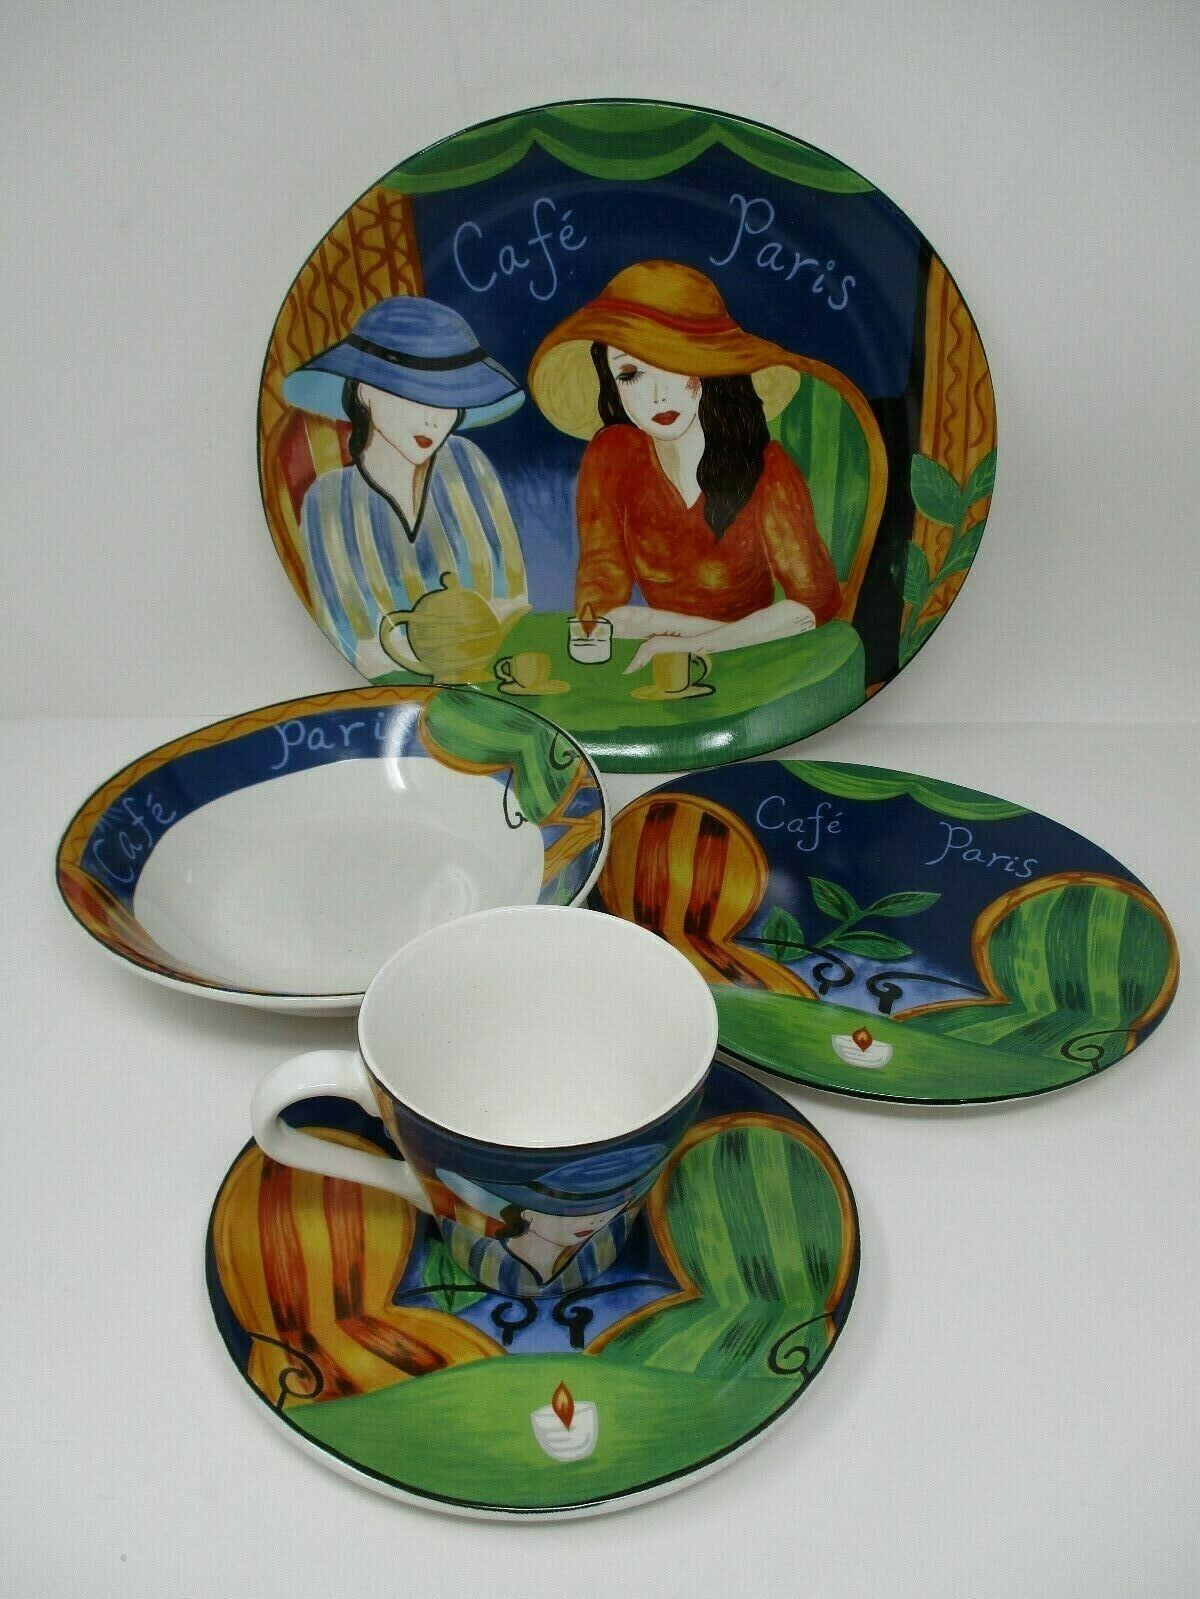 Sango Cafe Paris 5 Pc Place Setting Dish Set 4914